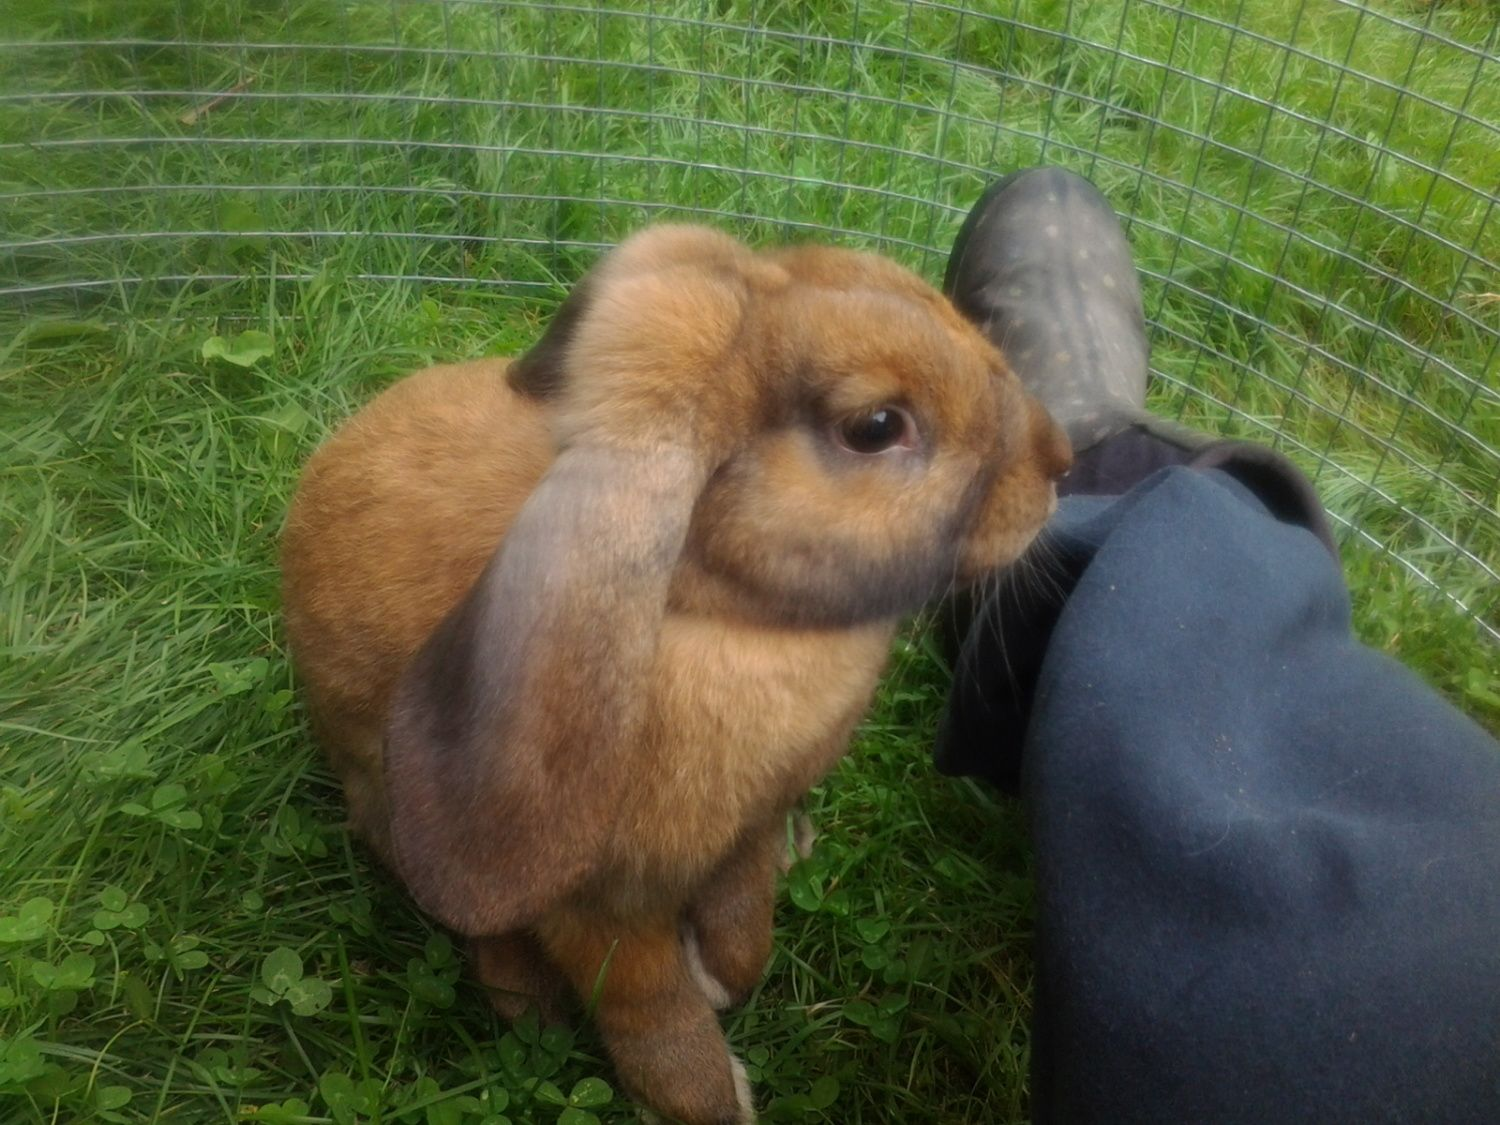 Hunter,  a 5 month old Satin/lop bunny!